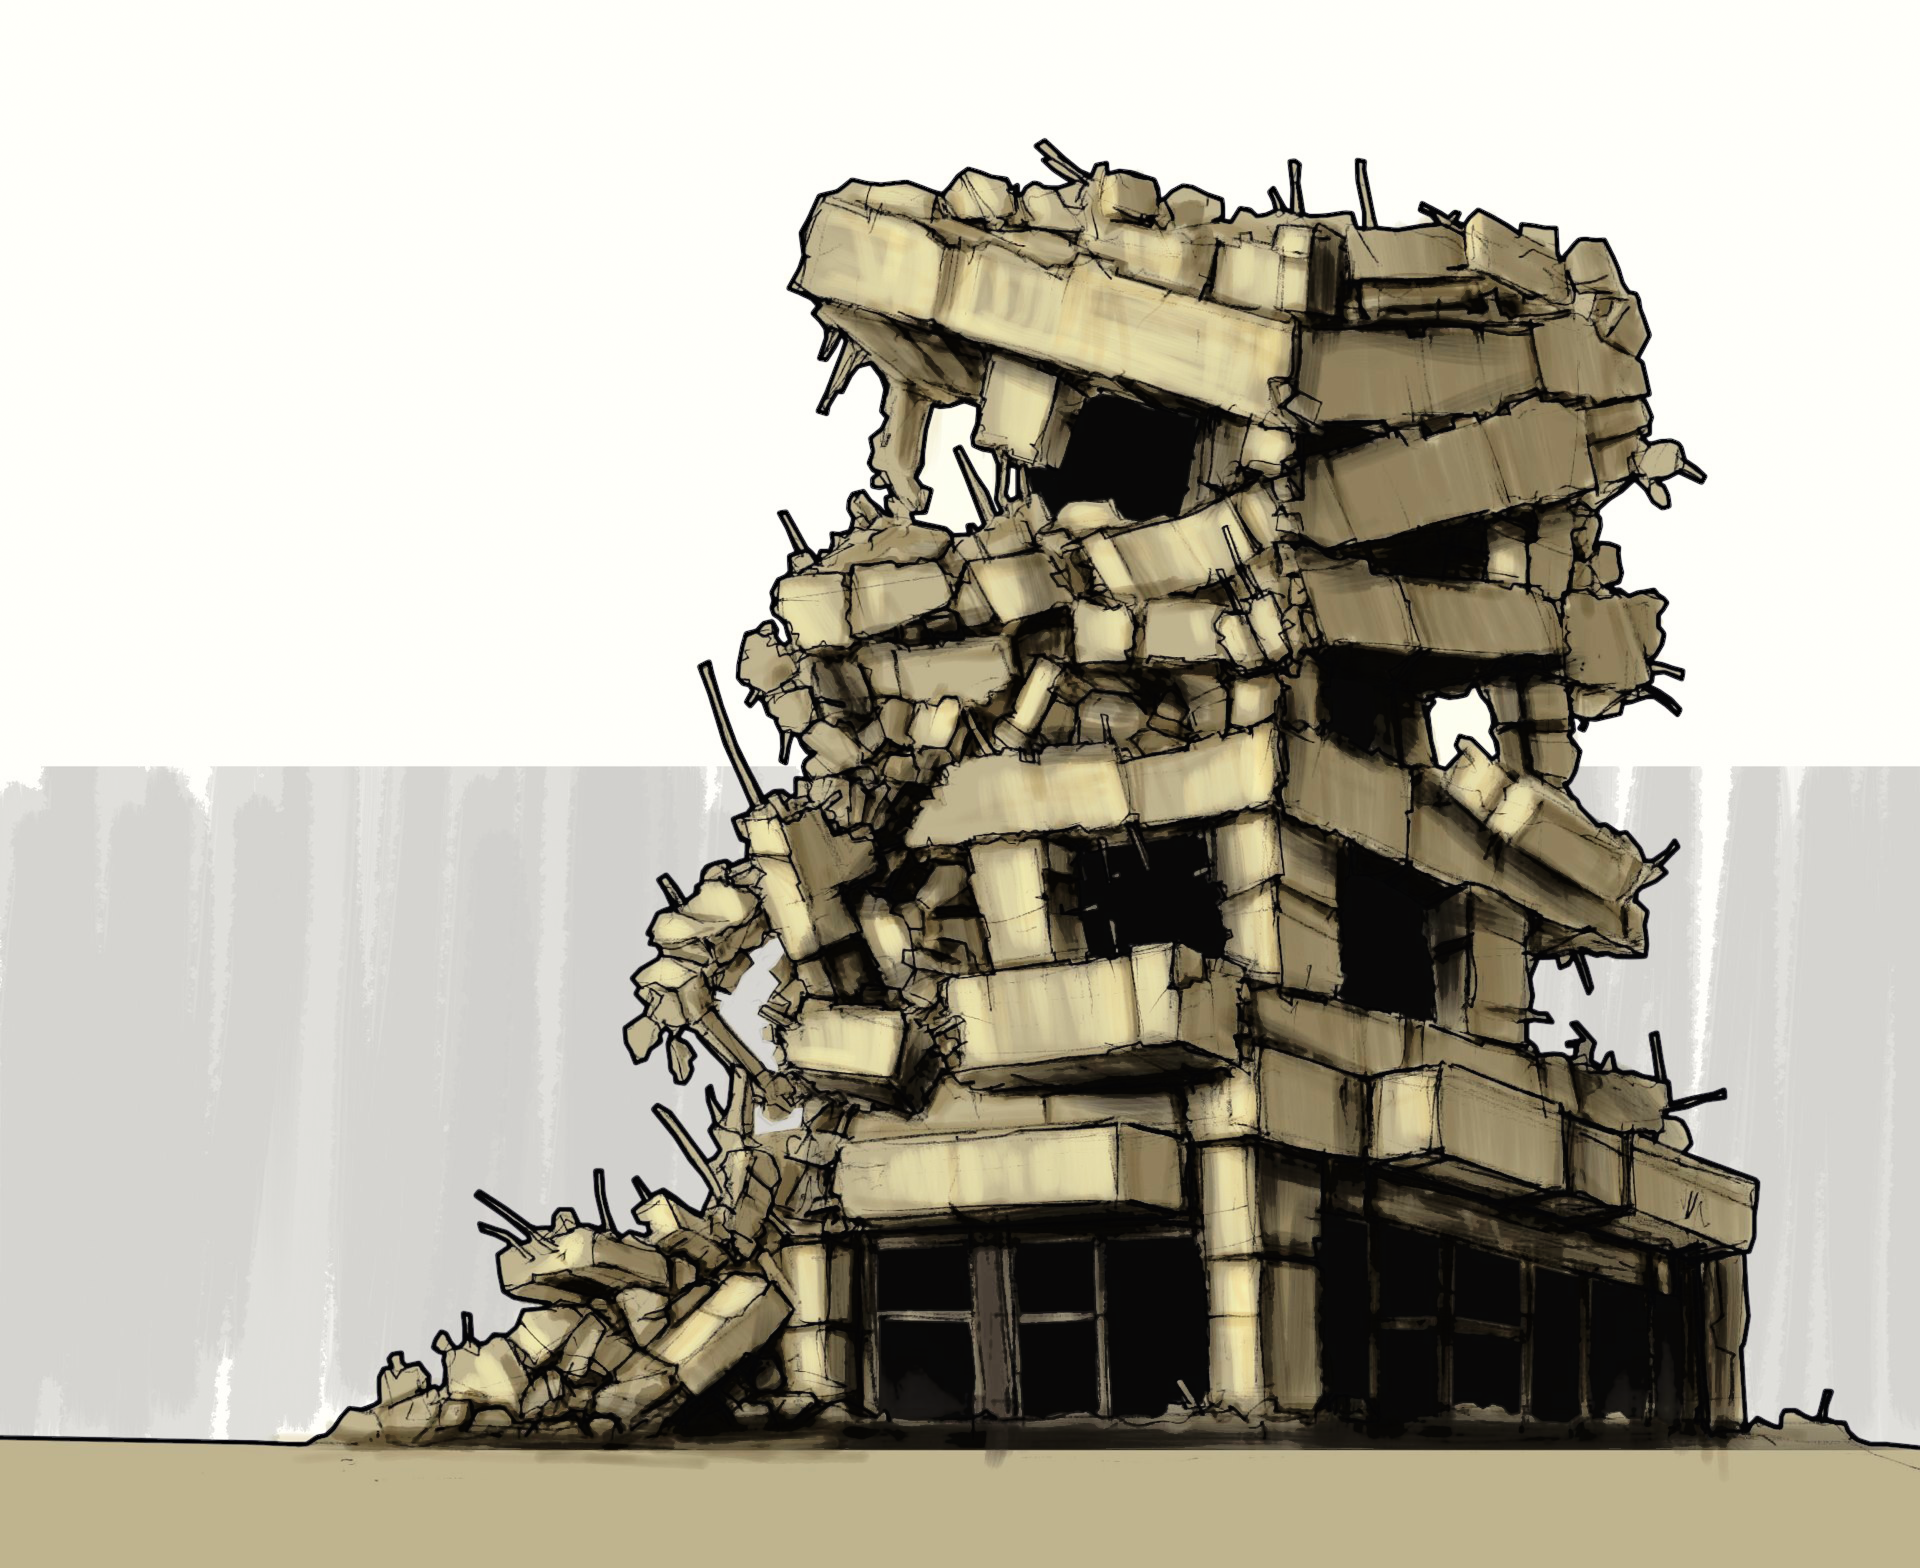 City Destroyed Building Concept